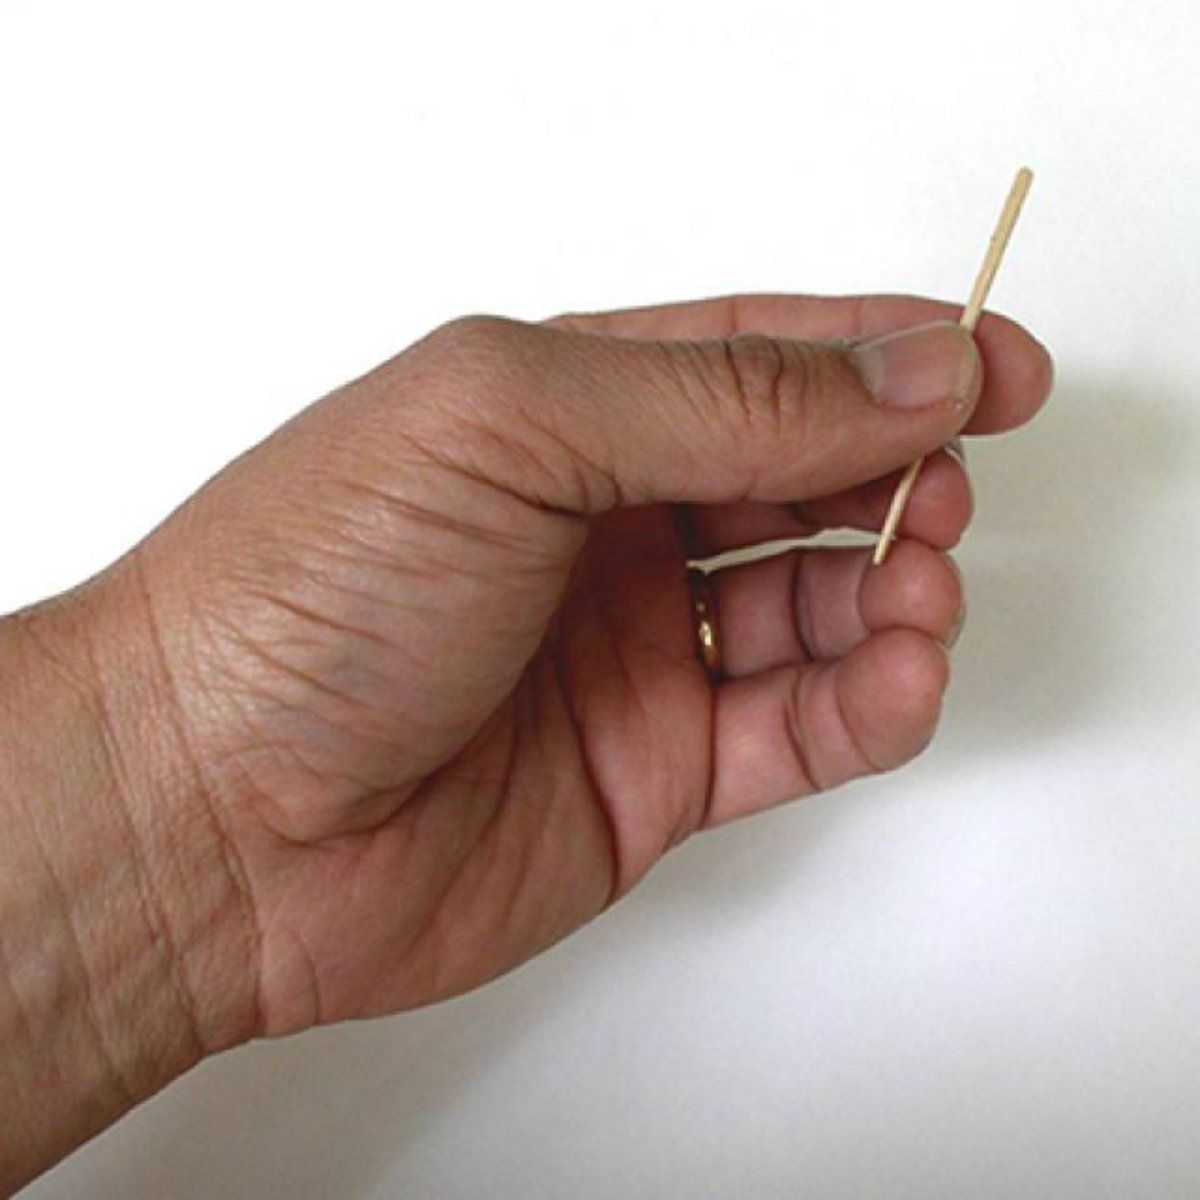 Holding a toothpick